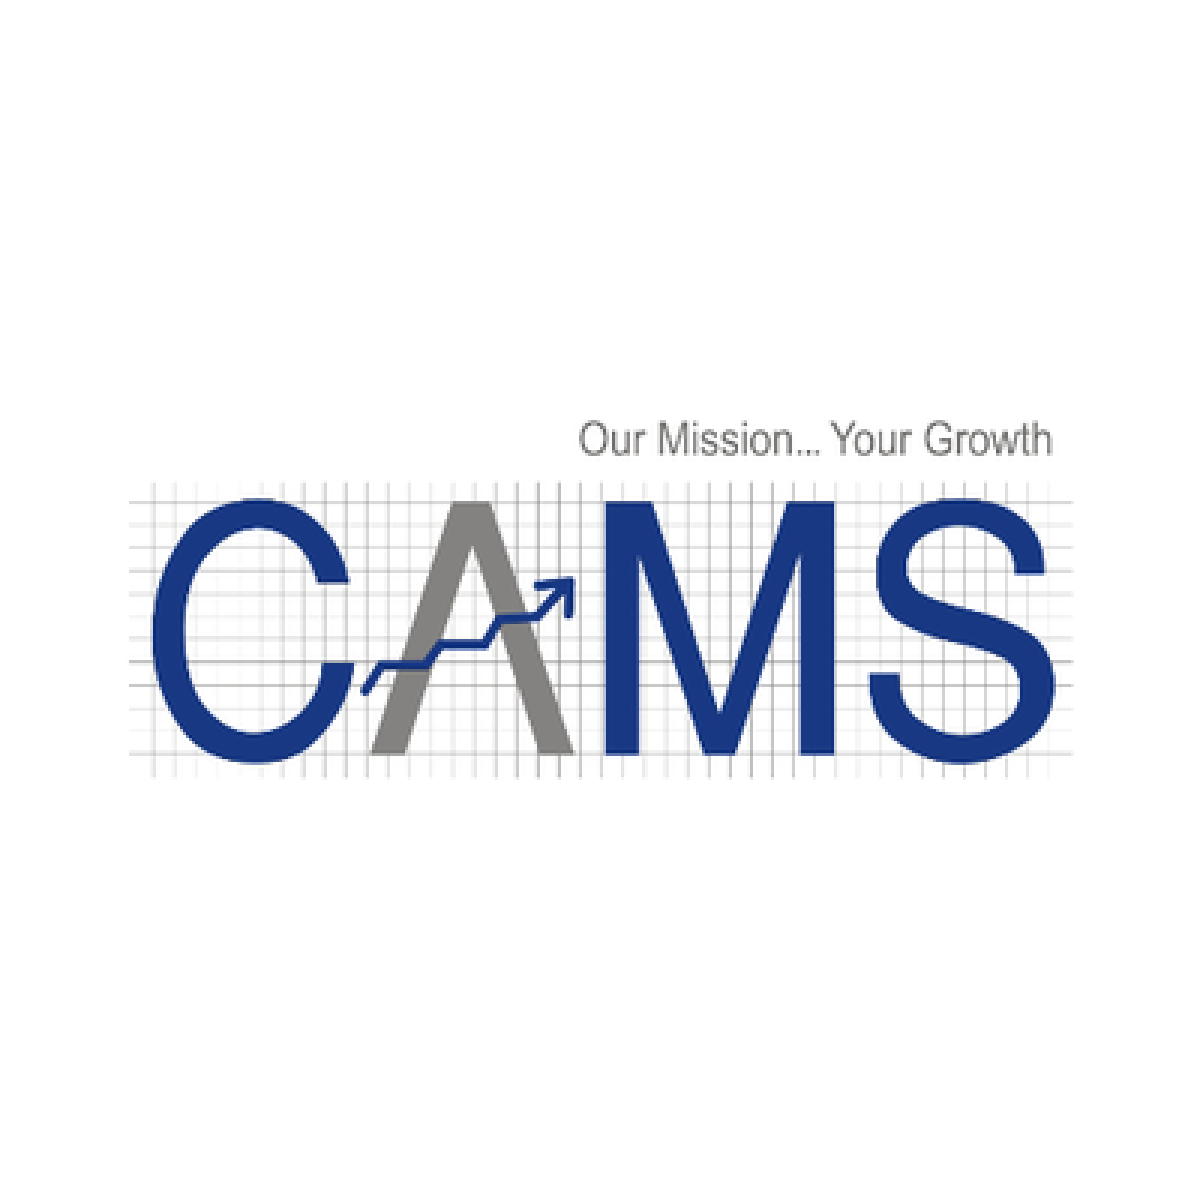 After months of getting listed, CAMS shares debut in NSE now: Find out why it took so long to get listed in NSE